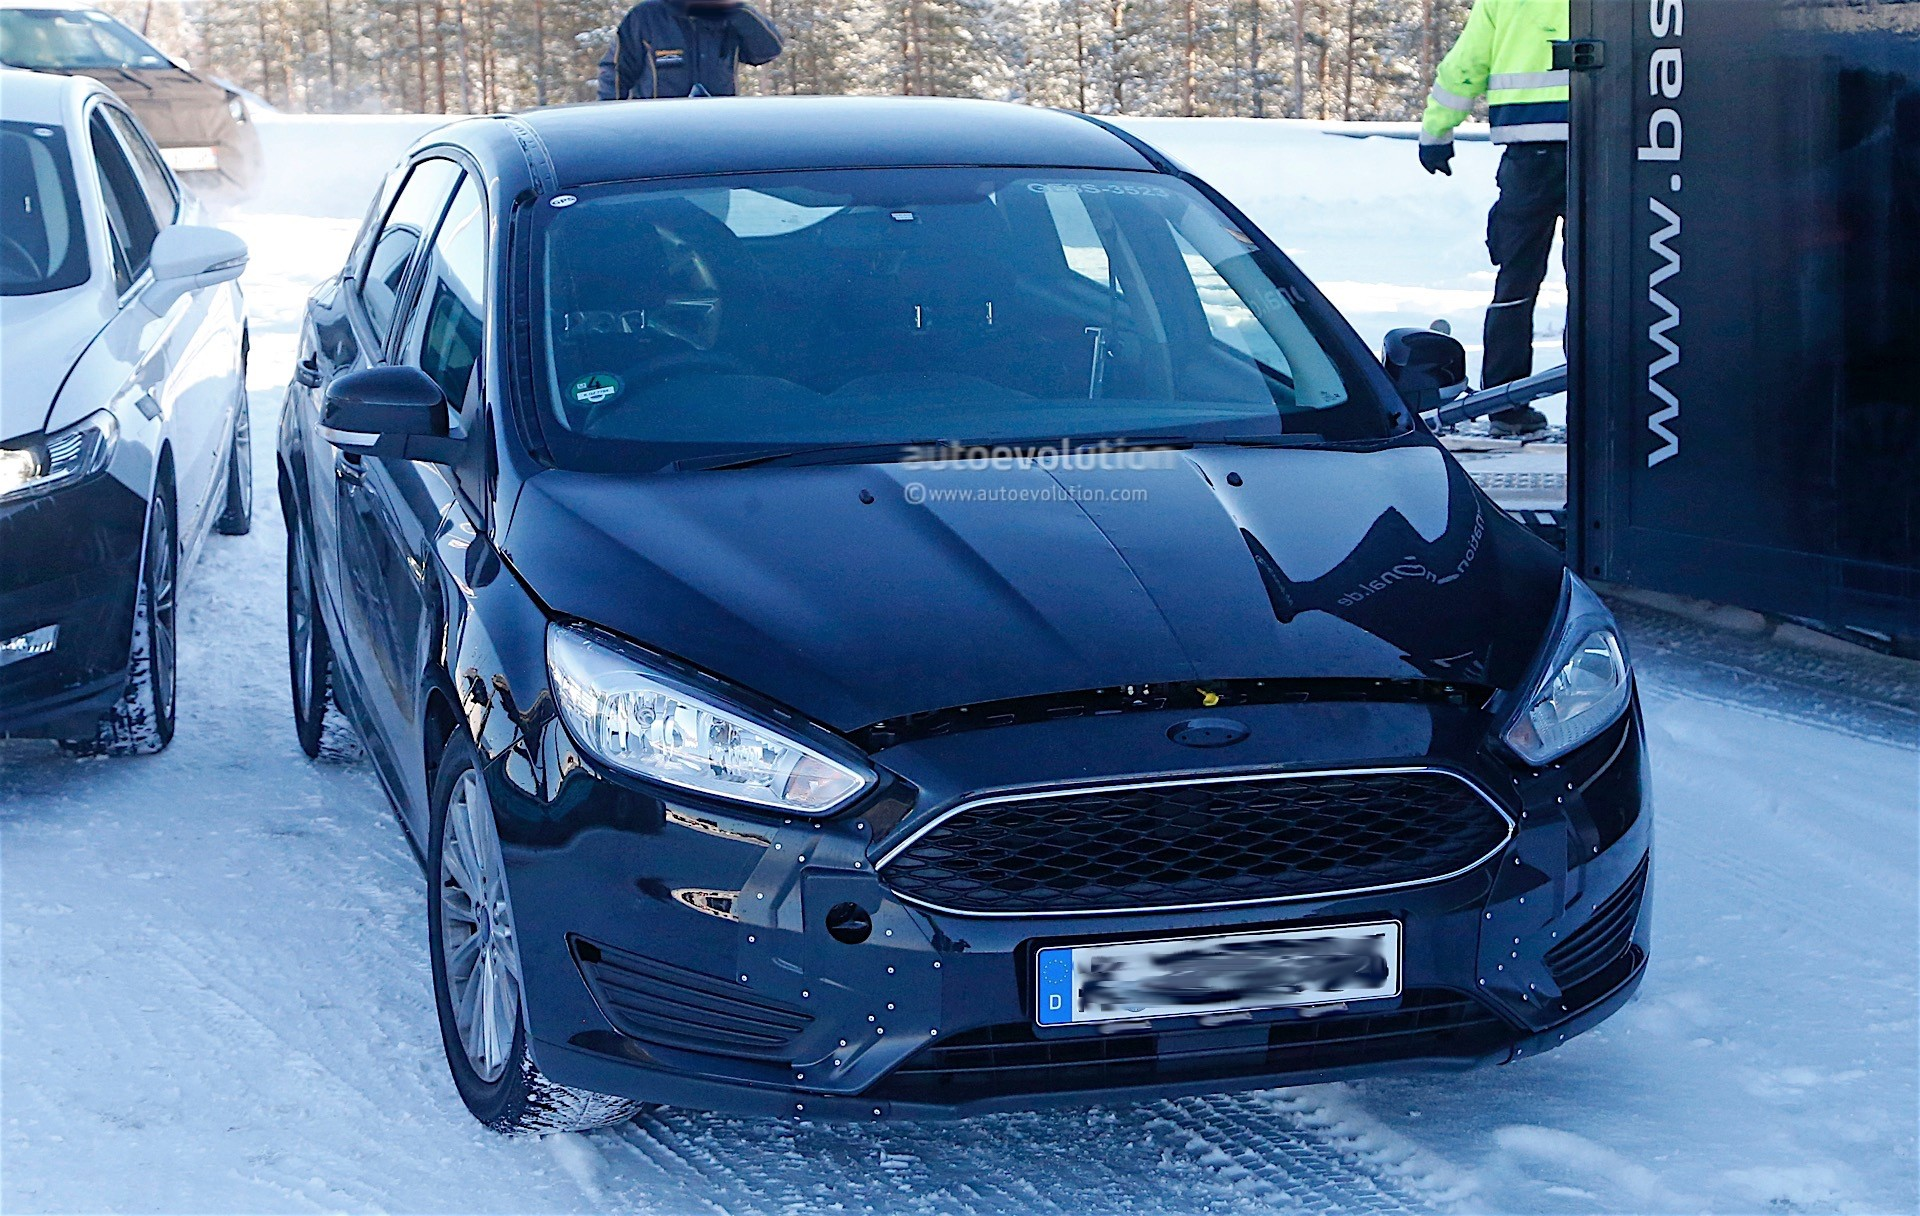 Ford Testing Next Generation Focus In Winter Conditions